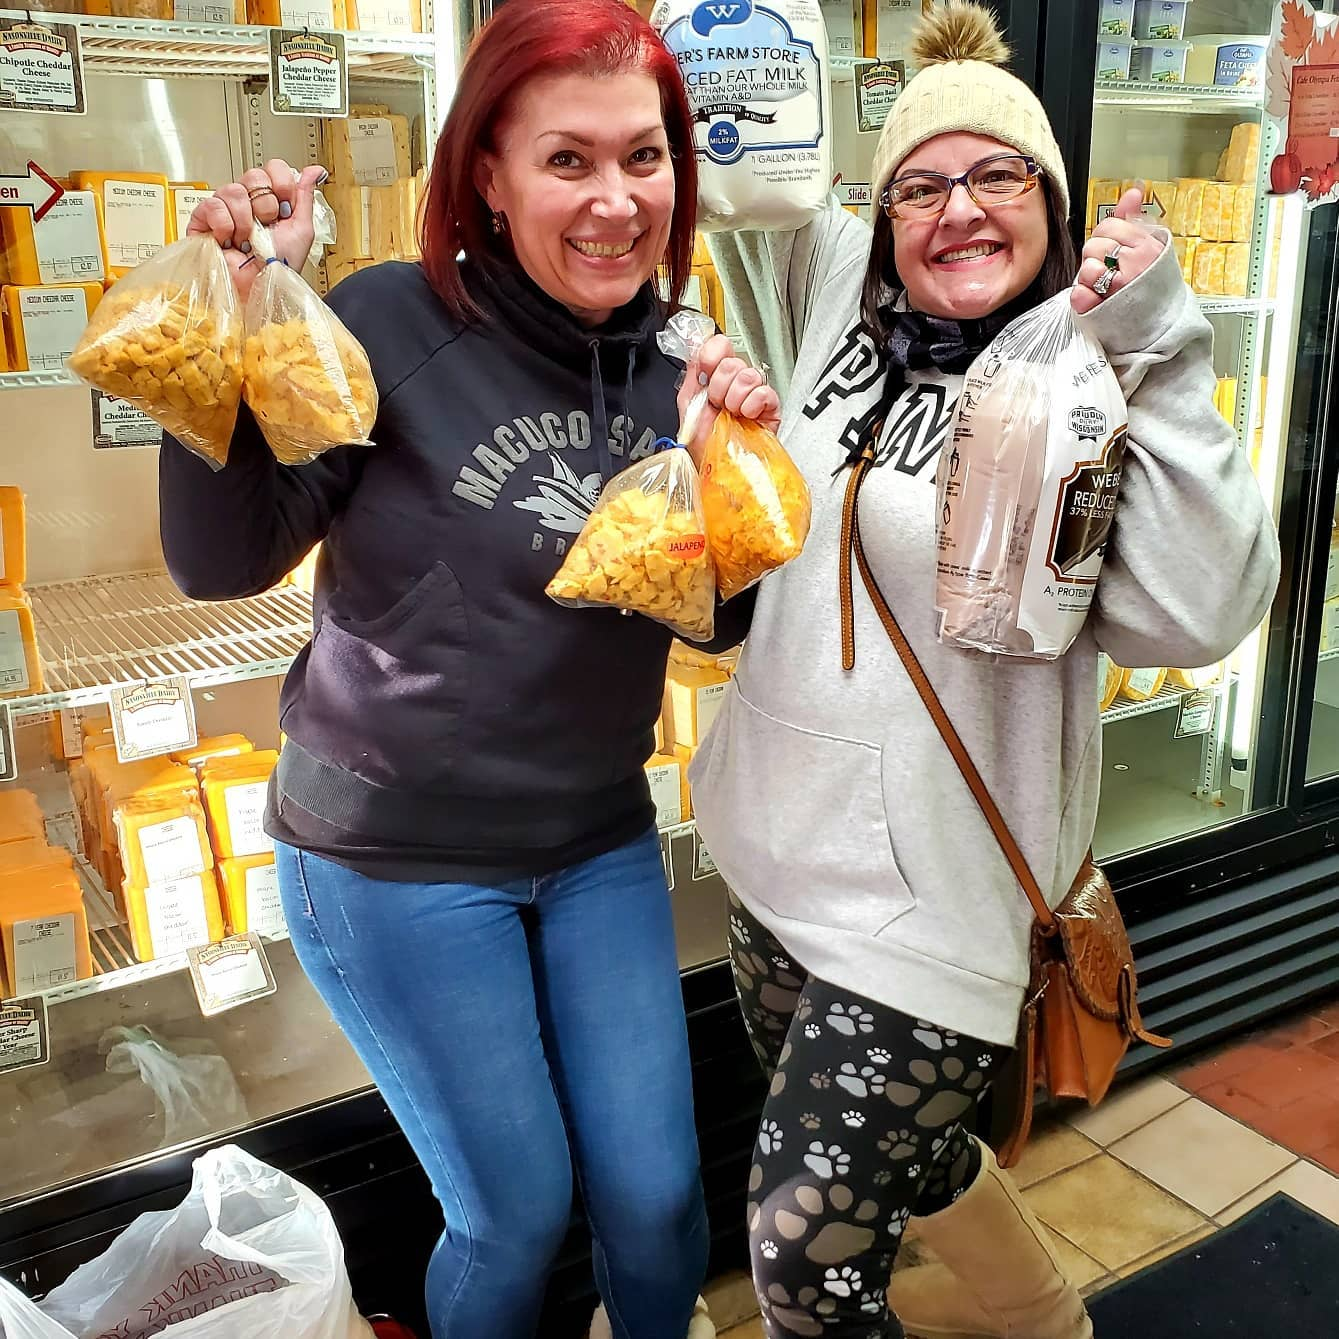 two women posing for a photo holding bags of cheese